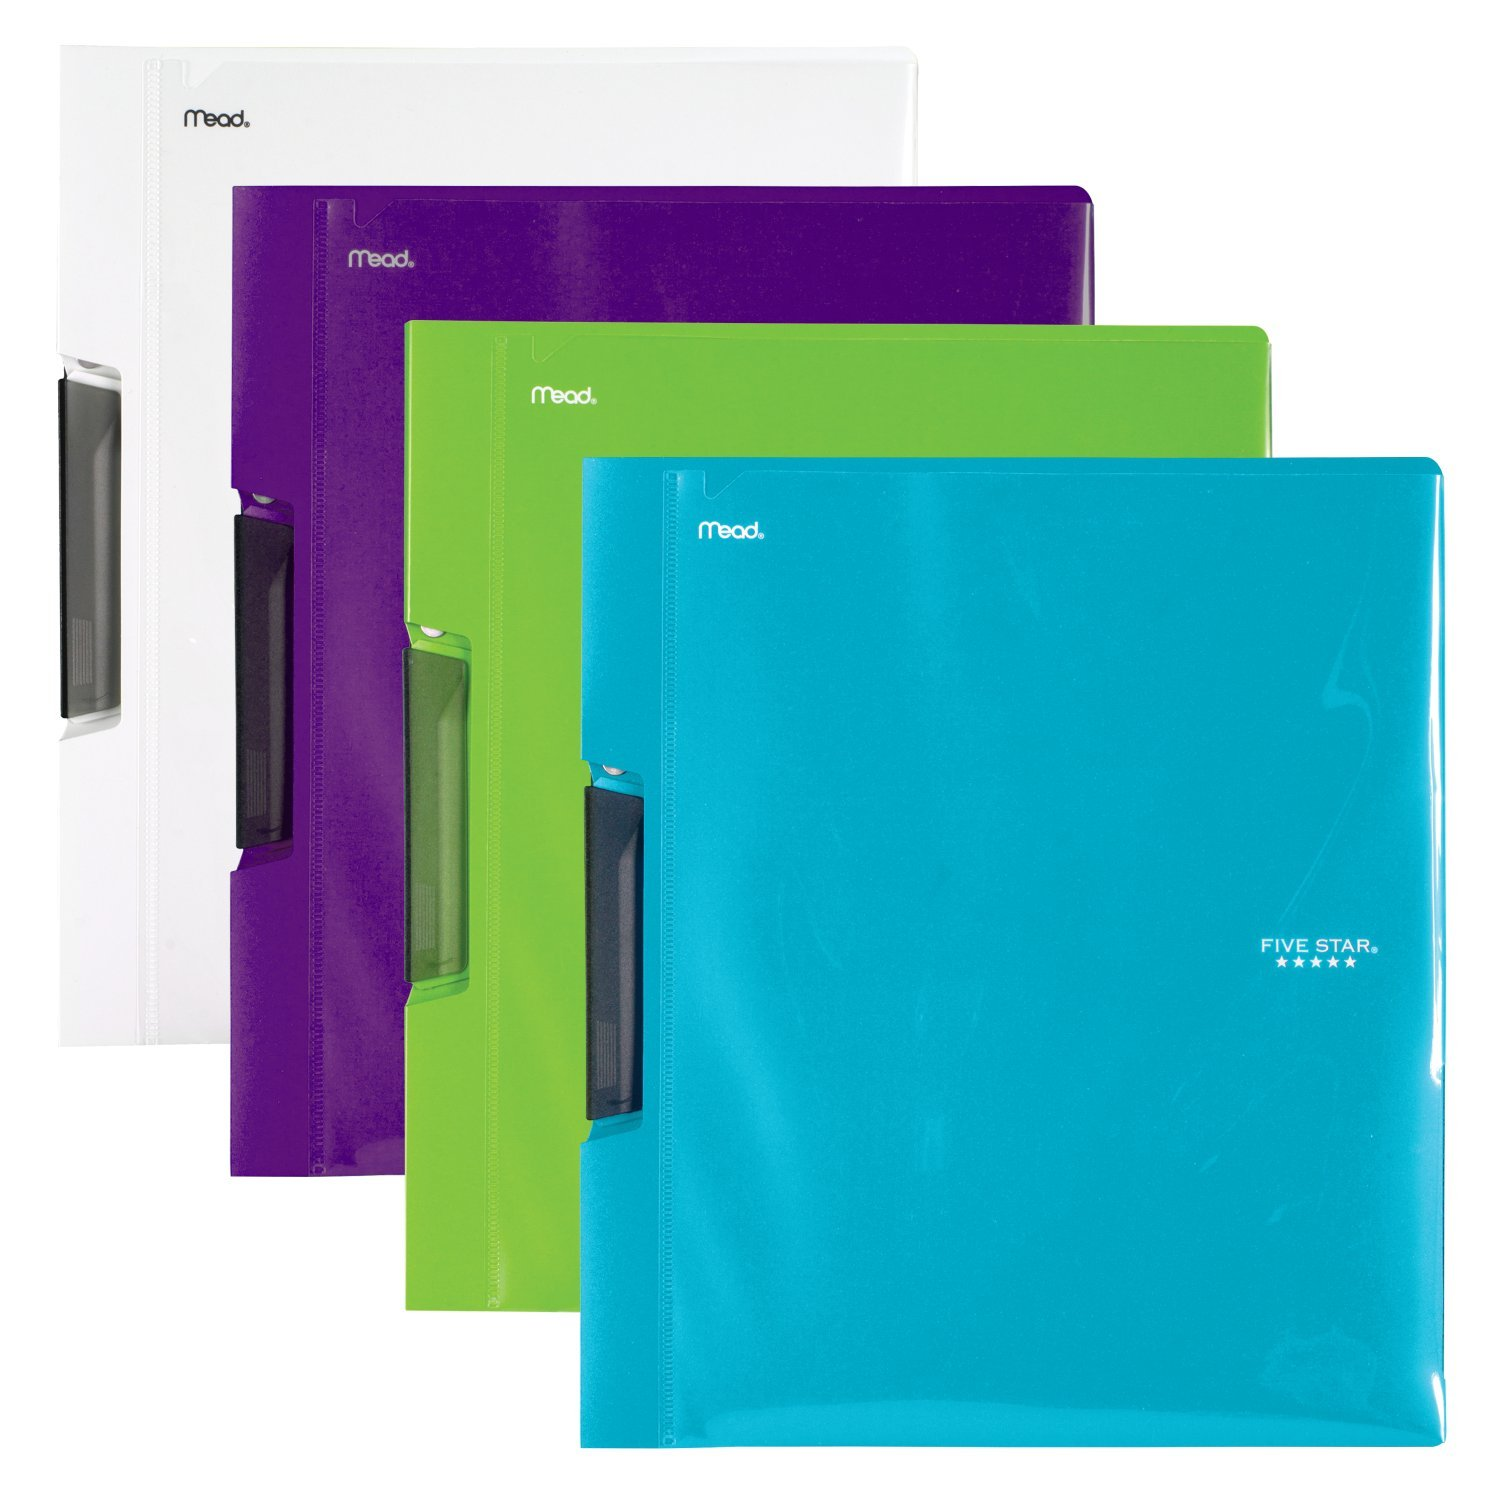 Five Star Report Cover, Teal, White, Royal Purple, Lime, 4 Pack (38116)